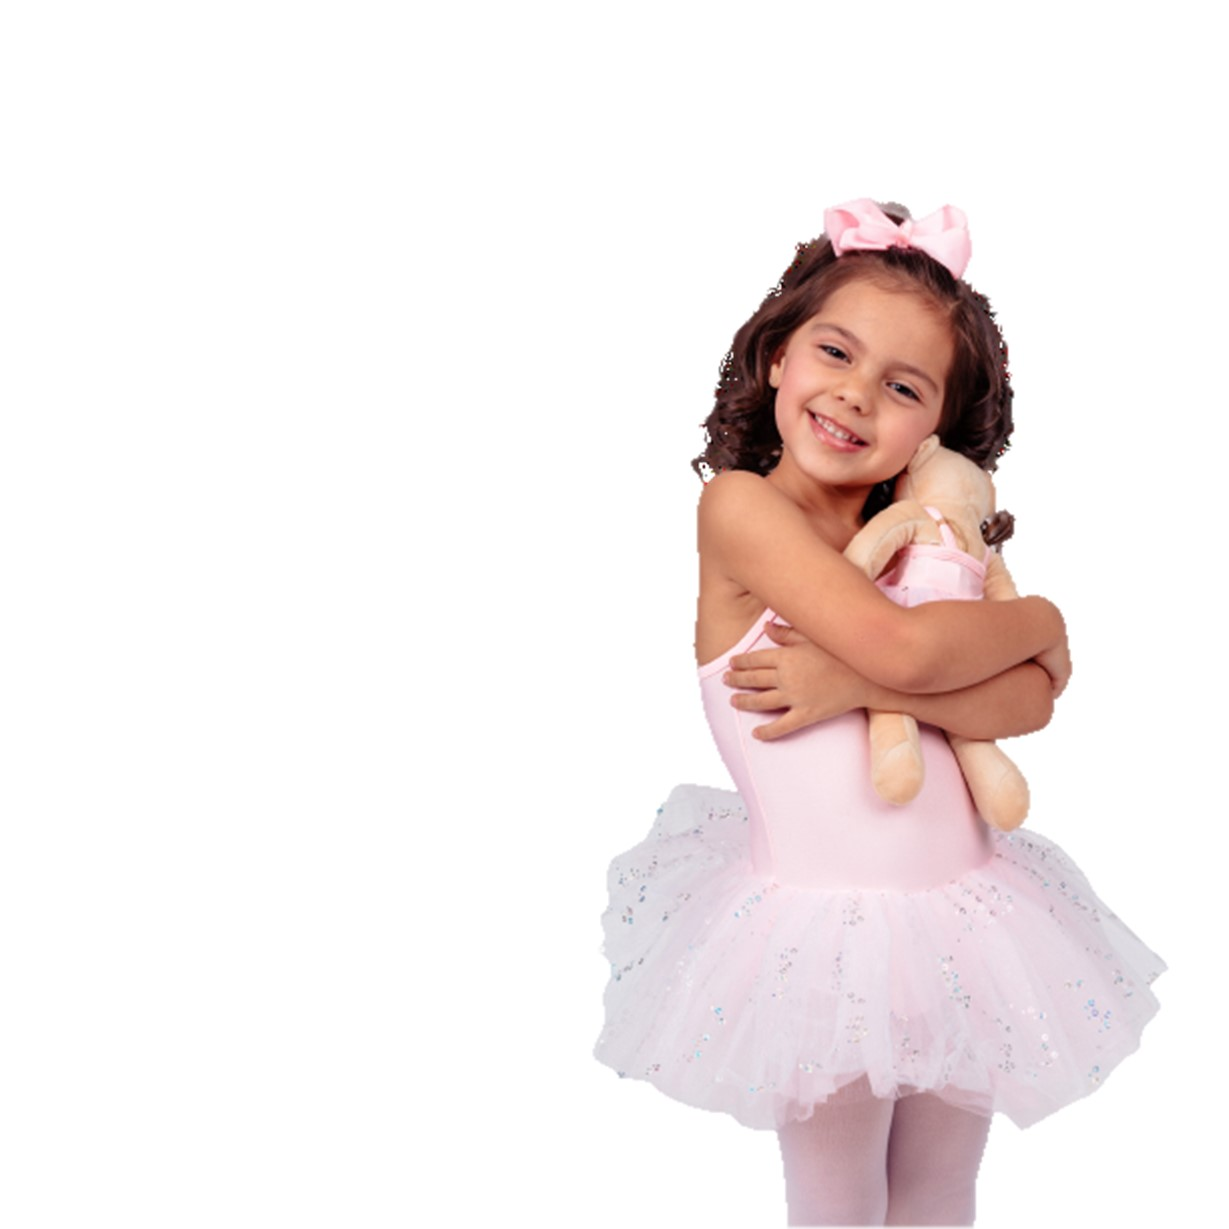 Adult dance and specialty dance camps